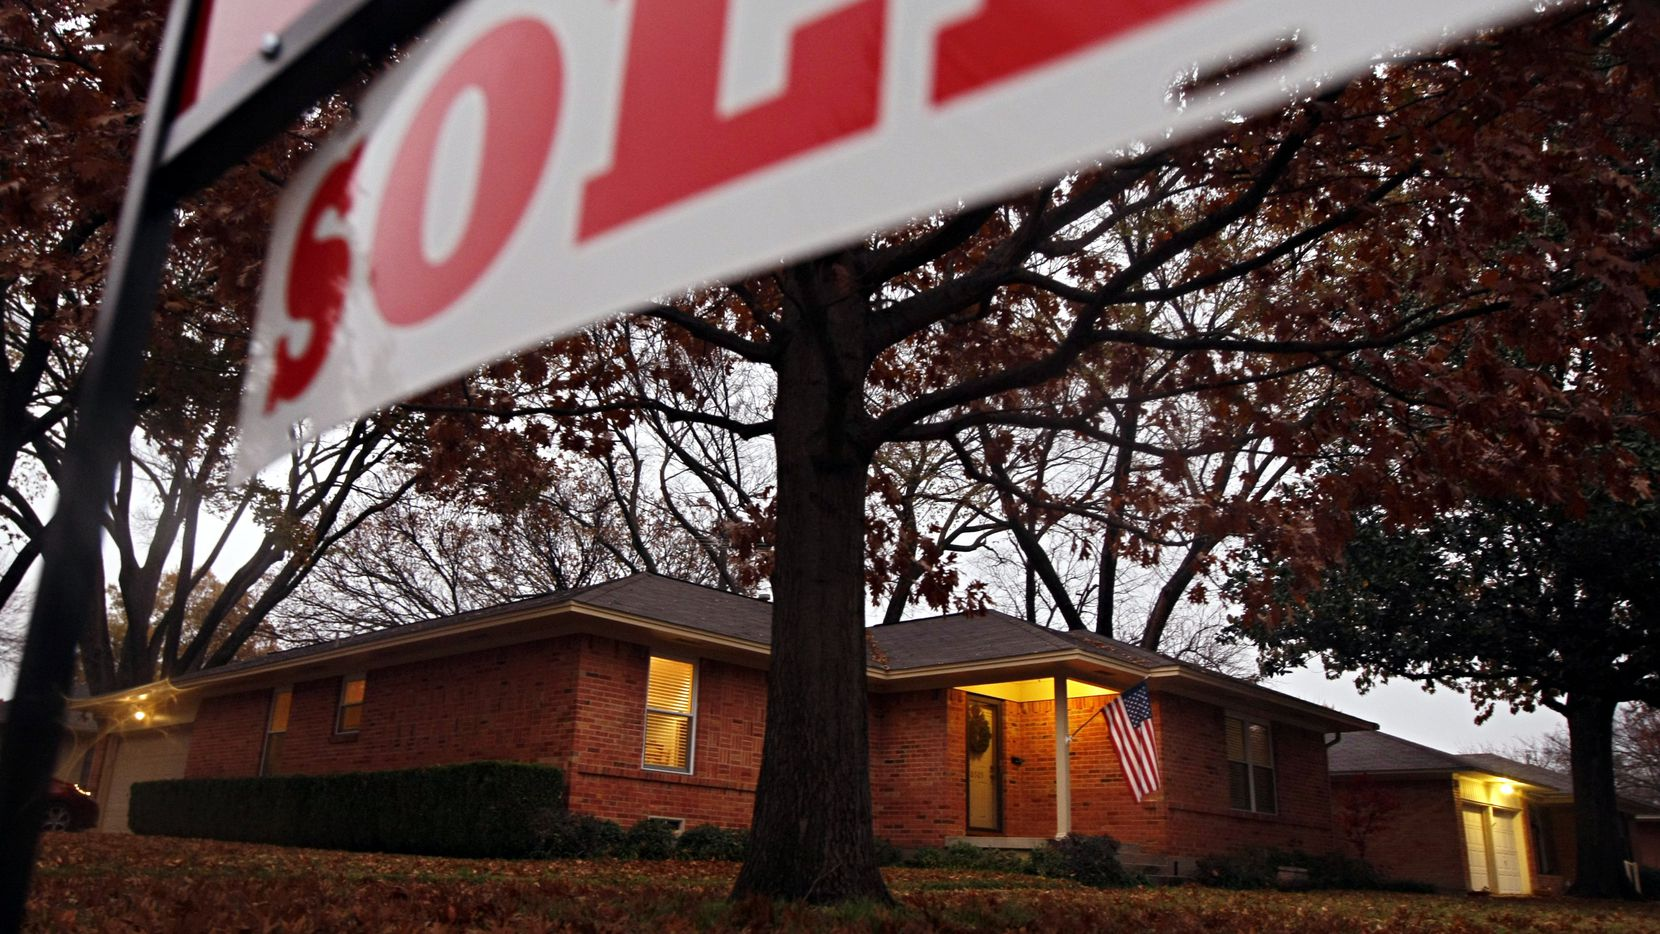 Four of the 10 top U.S. home markets were in North Texas, according to SmartAsset.